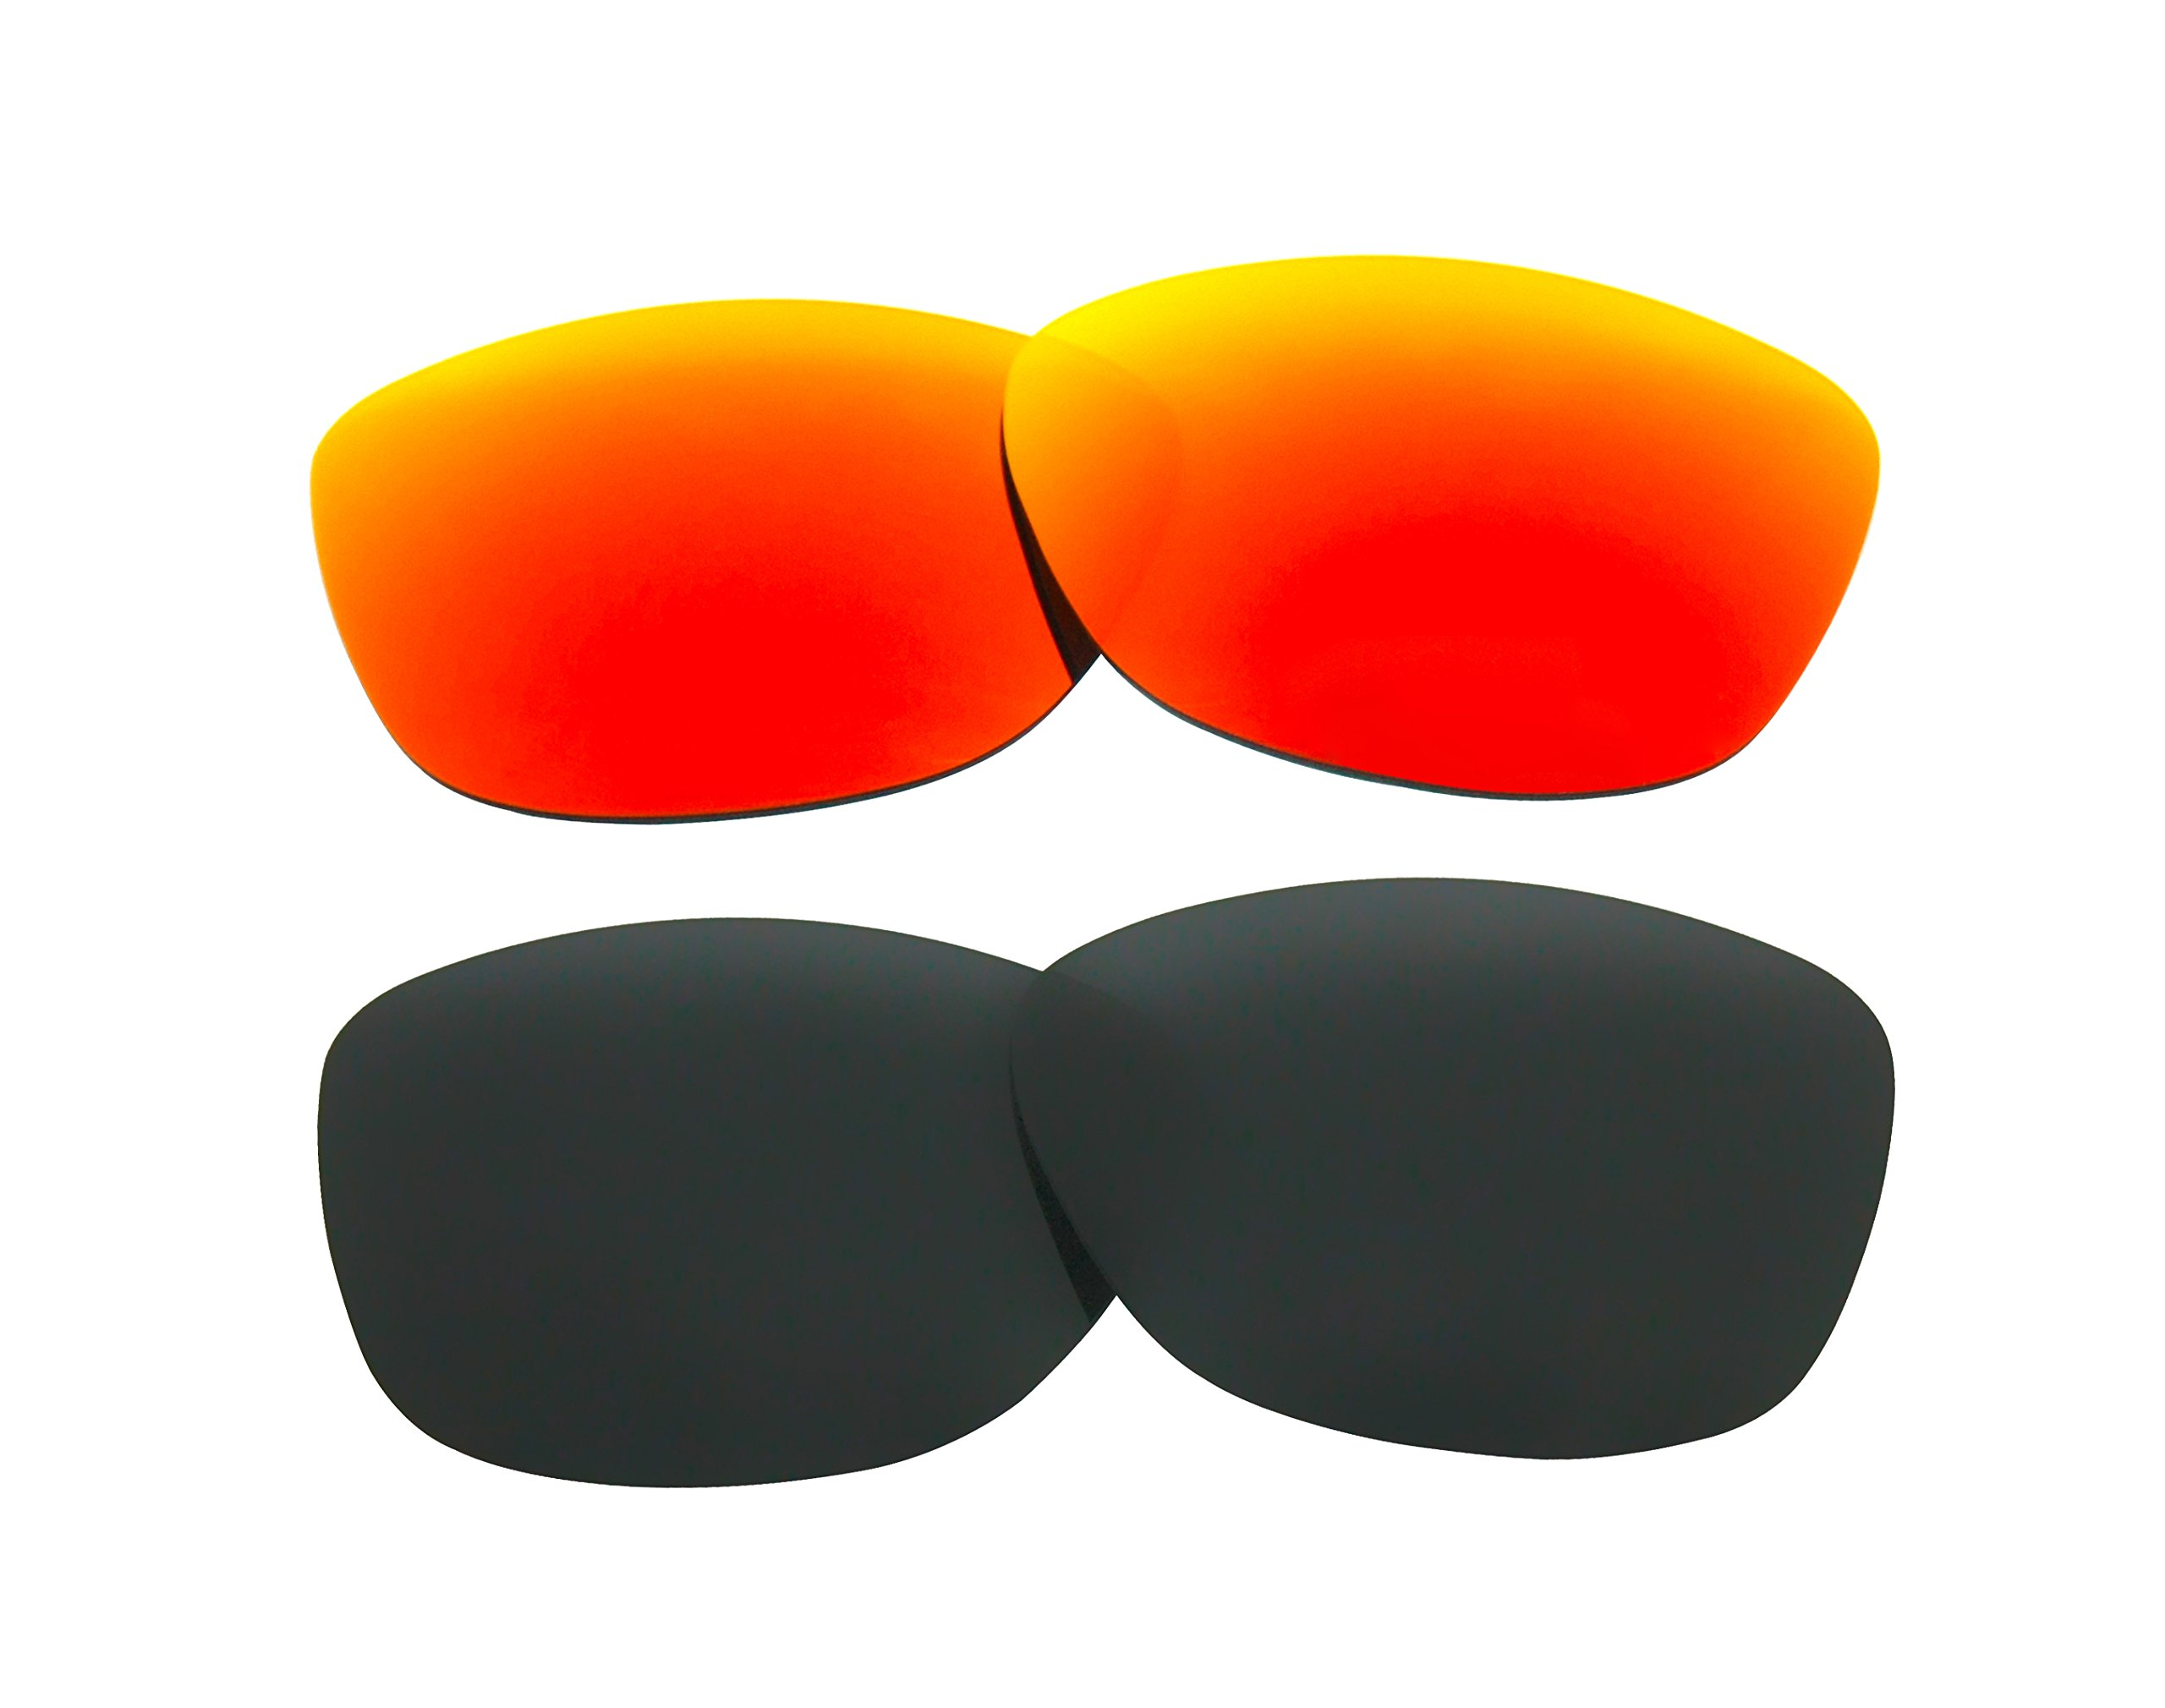 2 Pairs Polarized Replacement Sunglasses Lenses for Oakley Frogskins with UV Protection(Black and Fire Red Mirror) by C.D